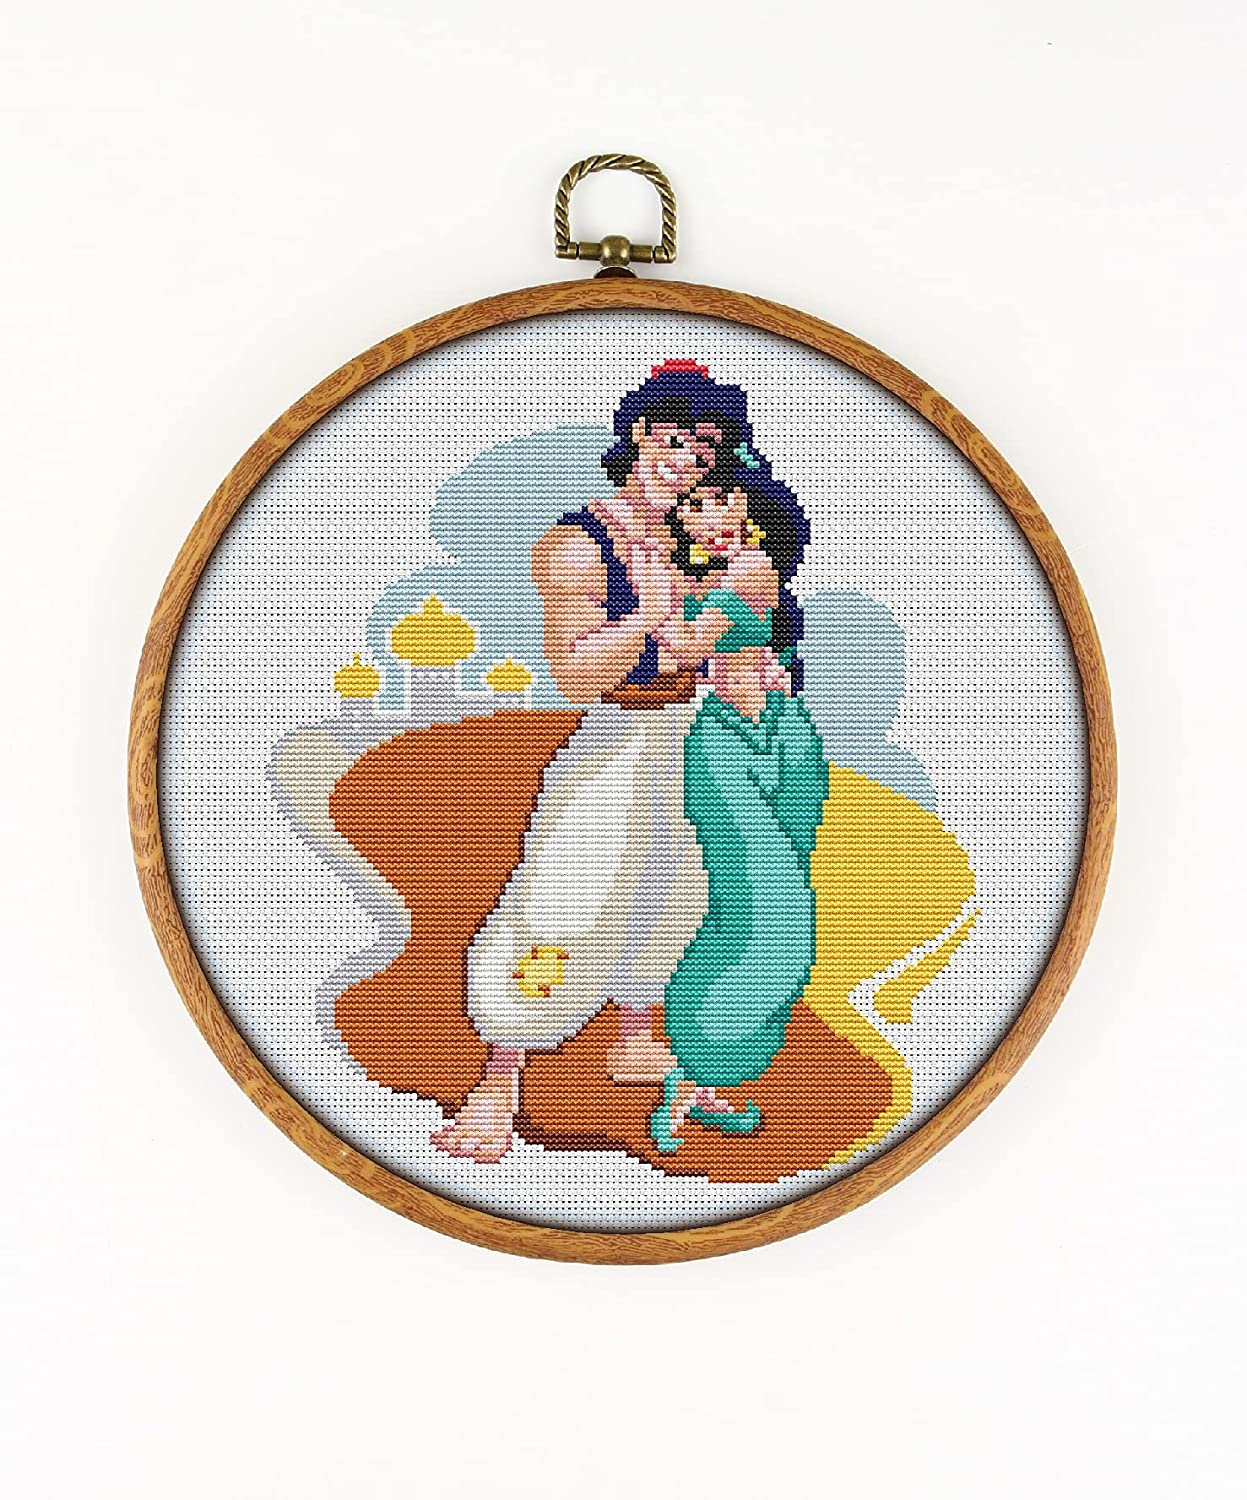 Aladdin and Special Campaign Jasmine K712-0 Counted Cross Stitch Pattern. Brand Cheap Sale Venue Printed